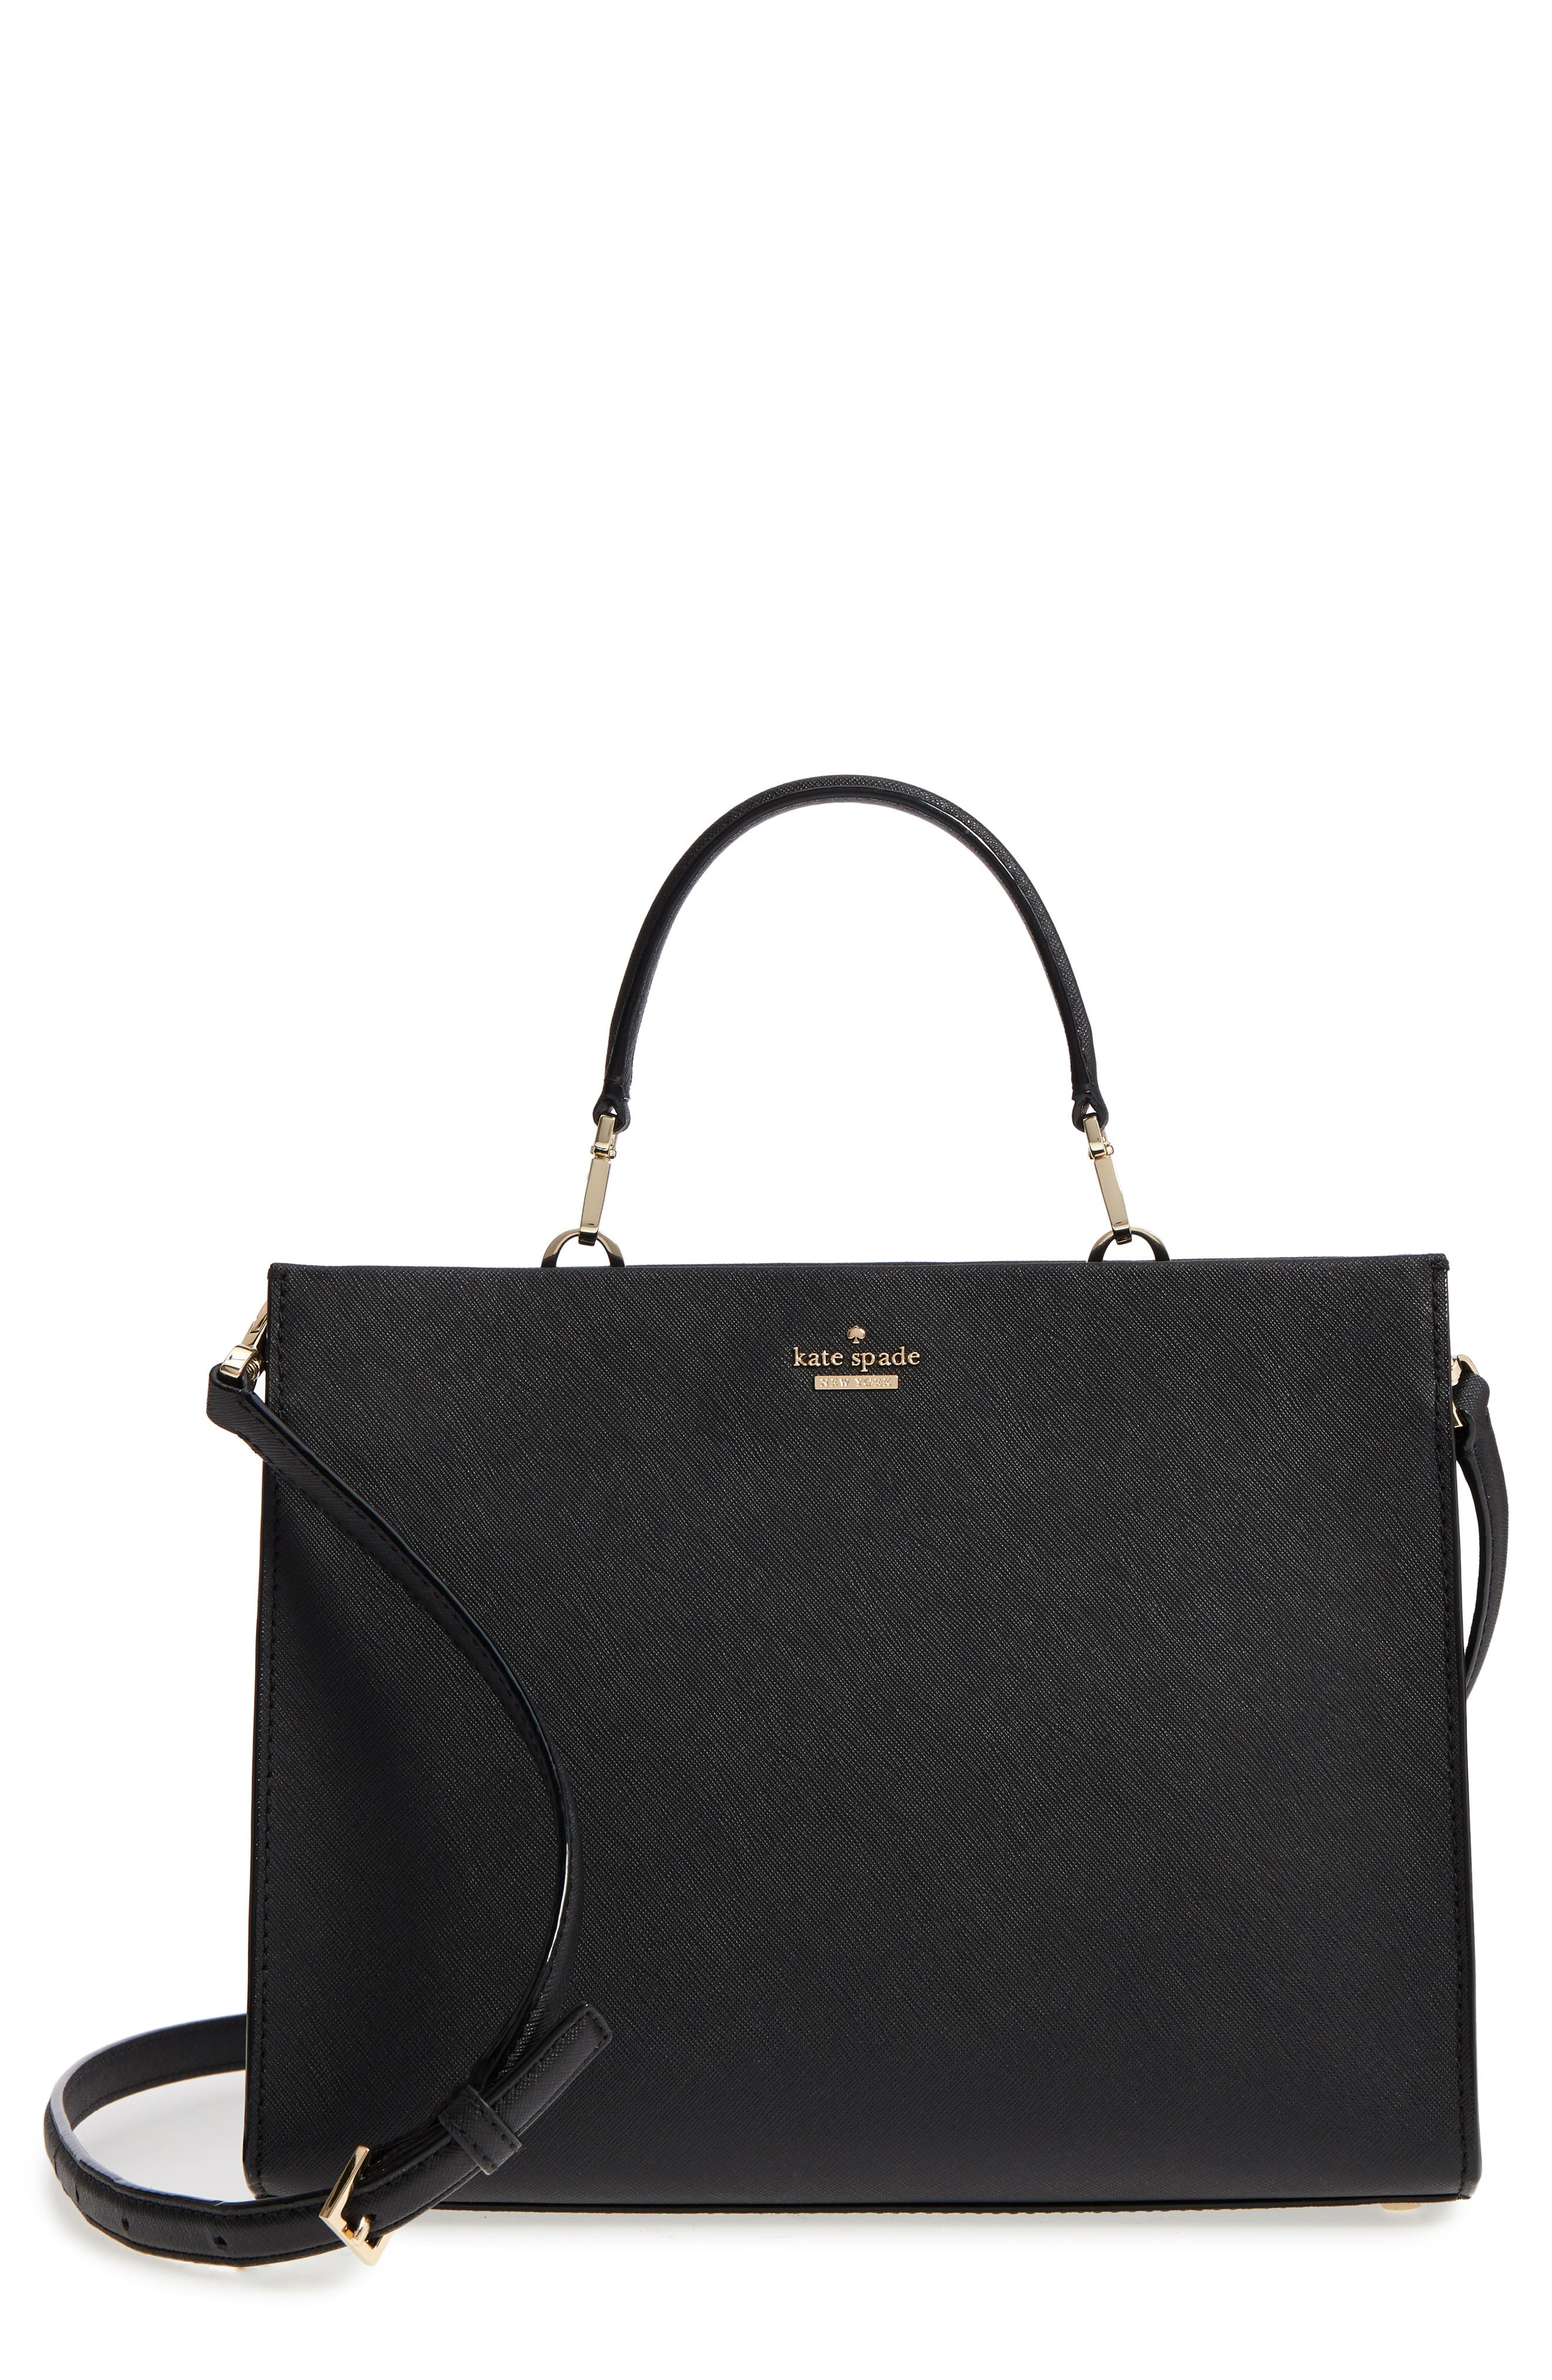 cameron street - sara leather satchel,                         Main,                         color, Black